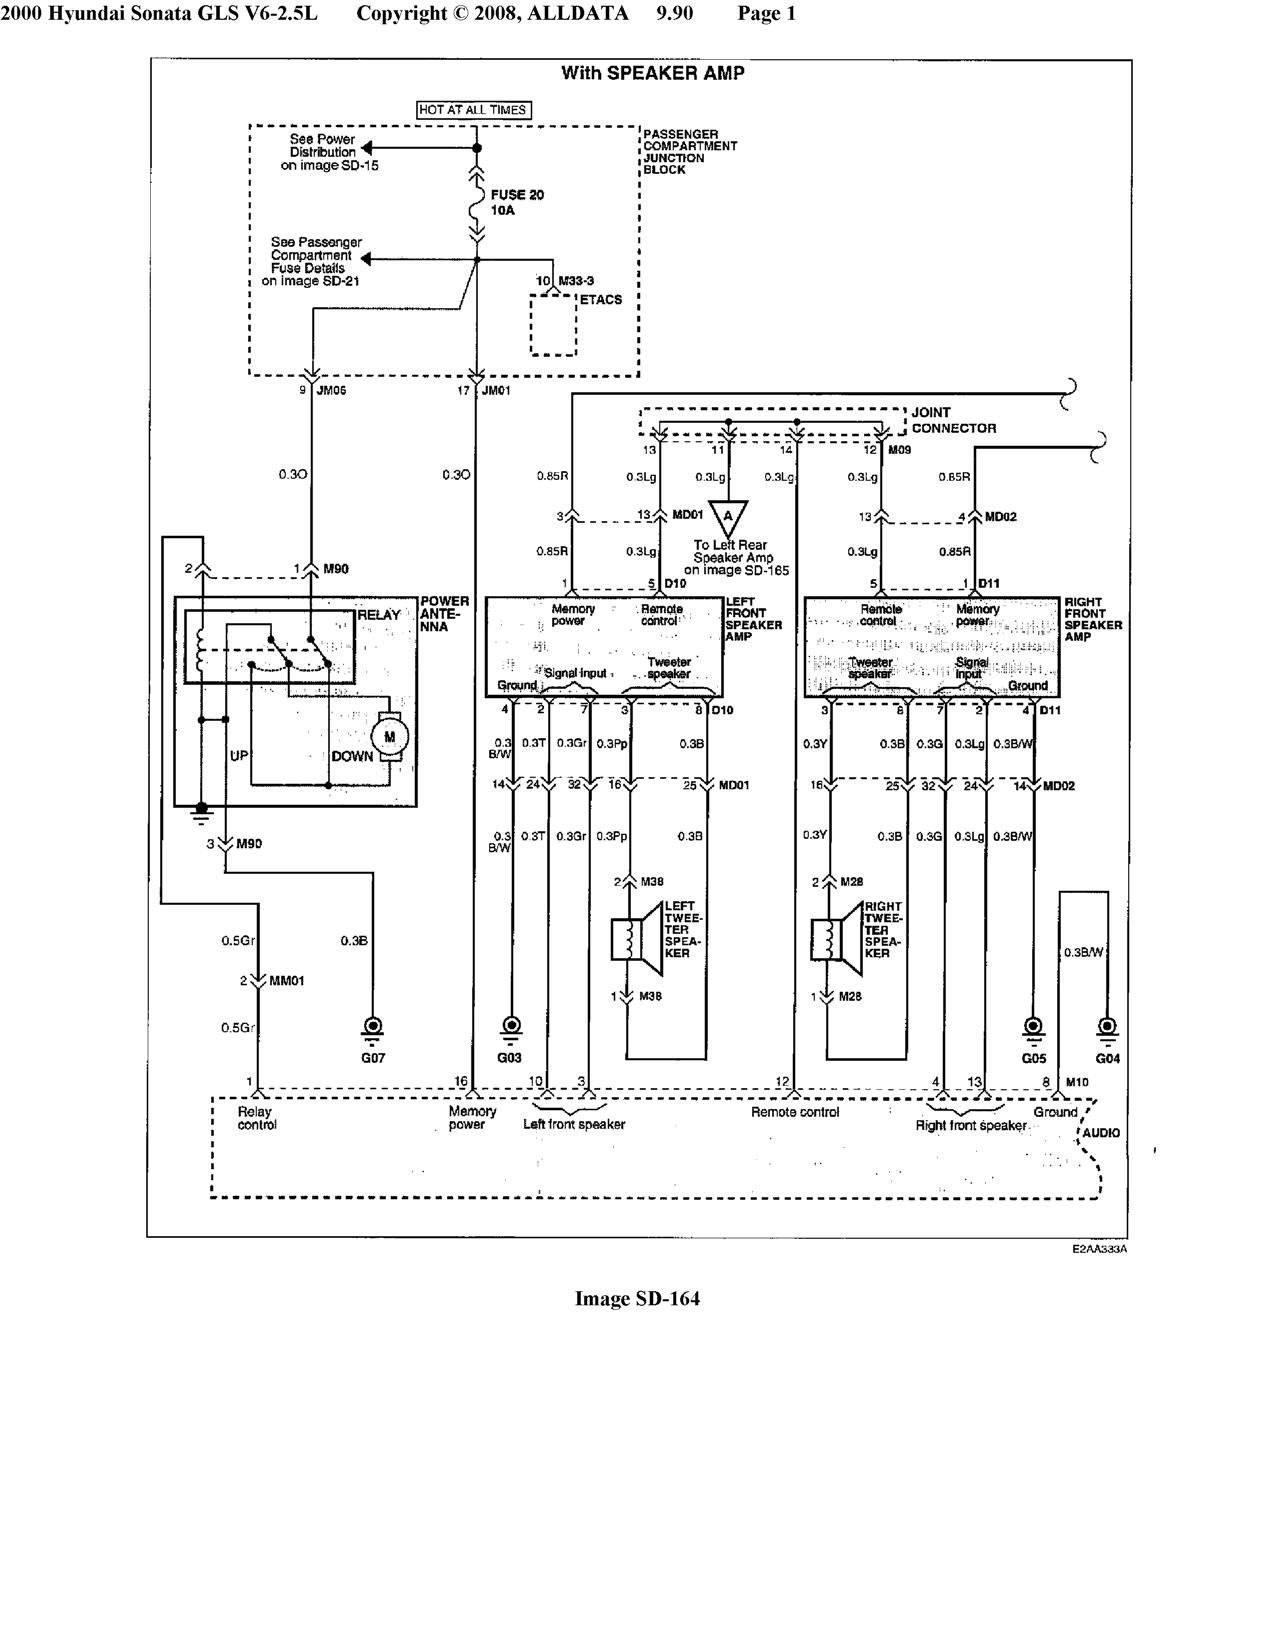 [DIAGRAM] 2003 Hyundai Tiburon Wiring Diagram Download